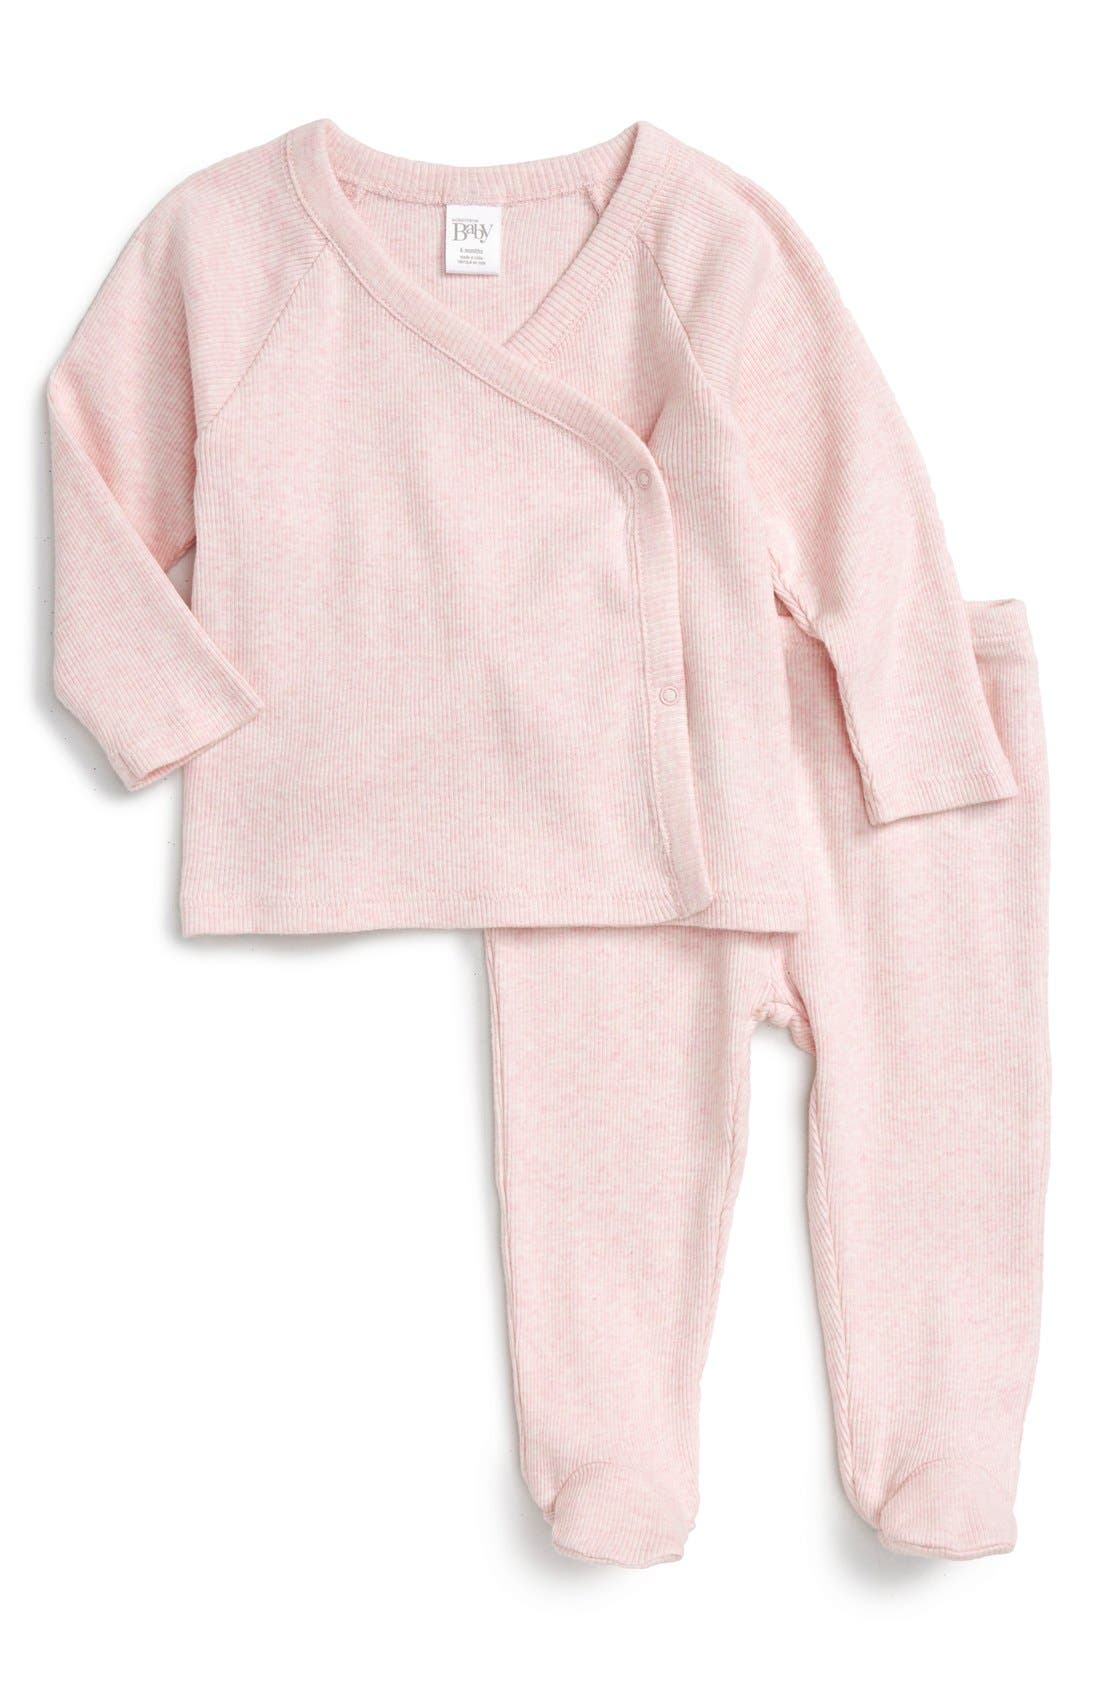 Main Image - Nordstrom Baby Wrap Top & Footed Pants Set (Baby Girls)